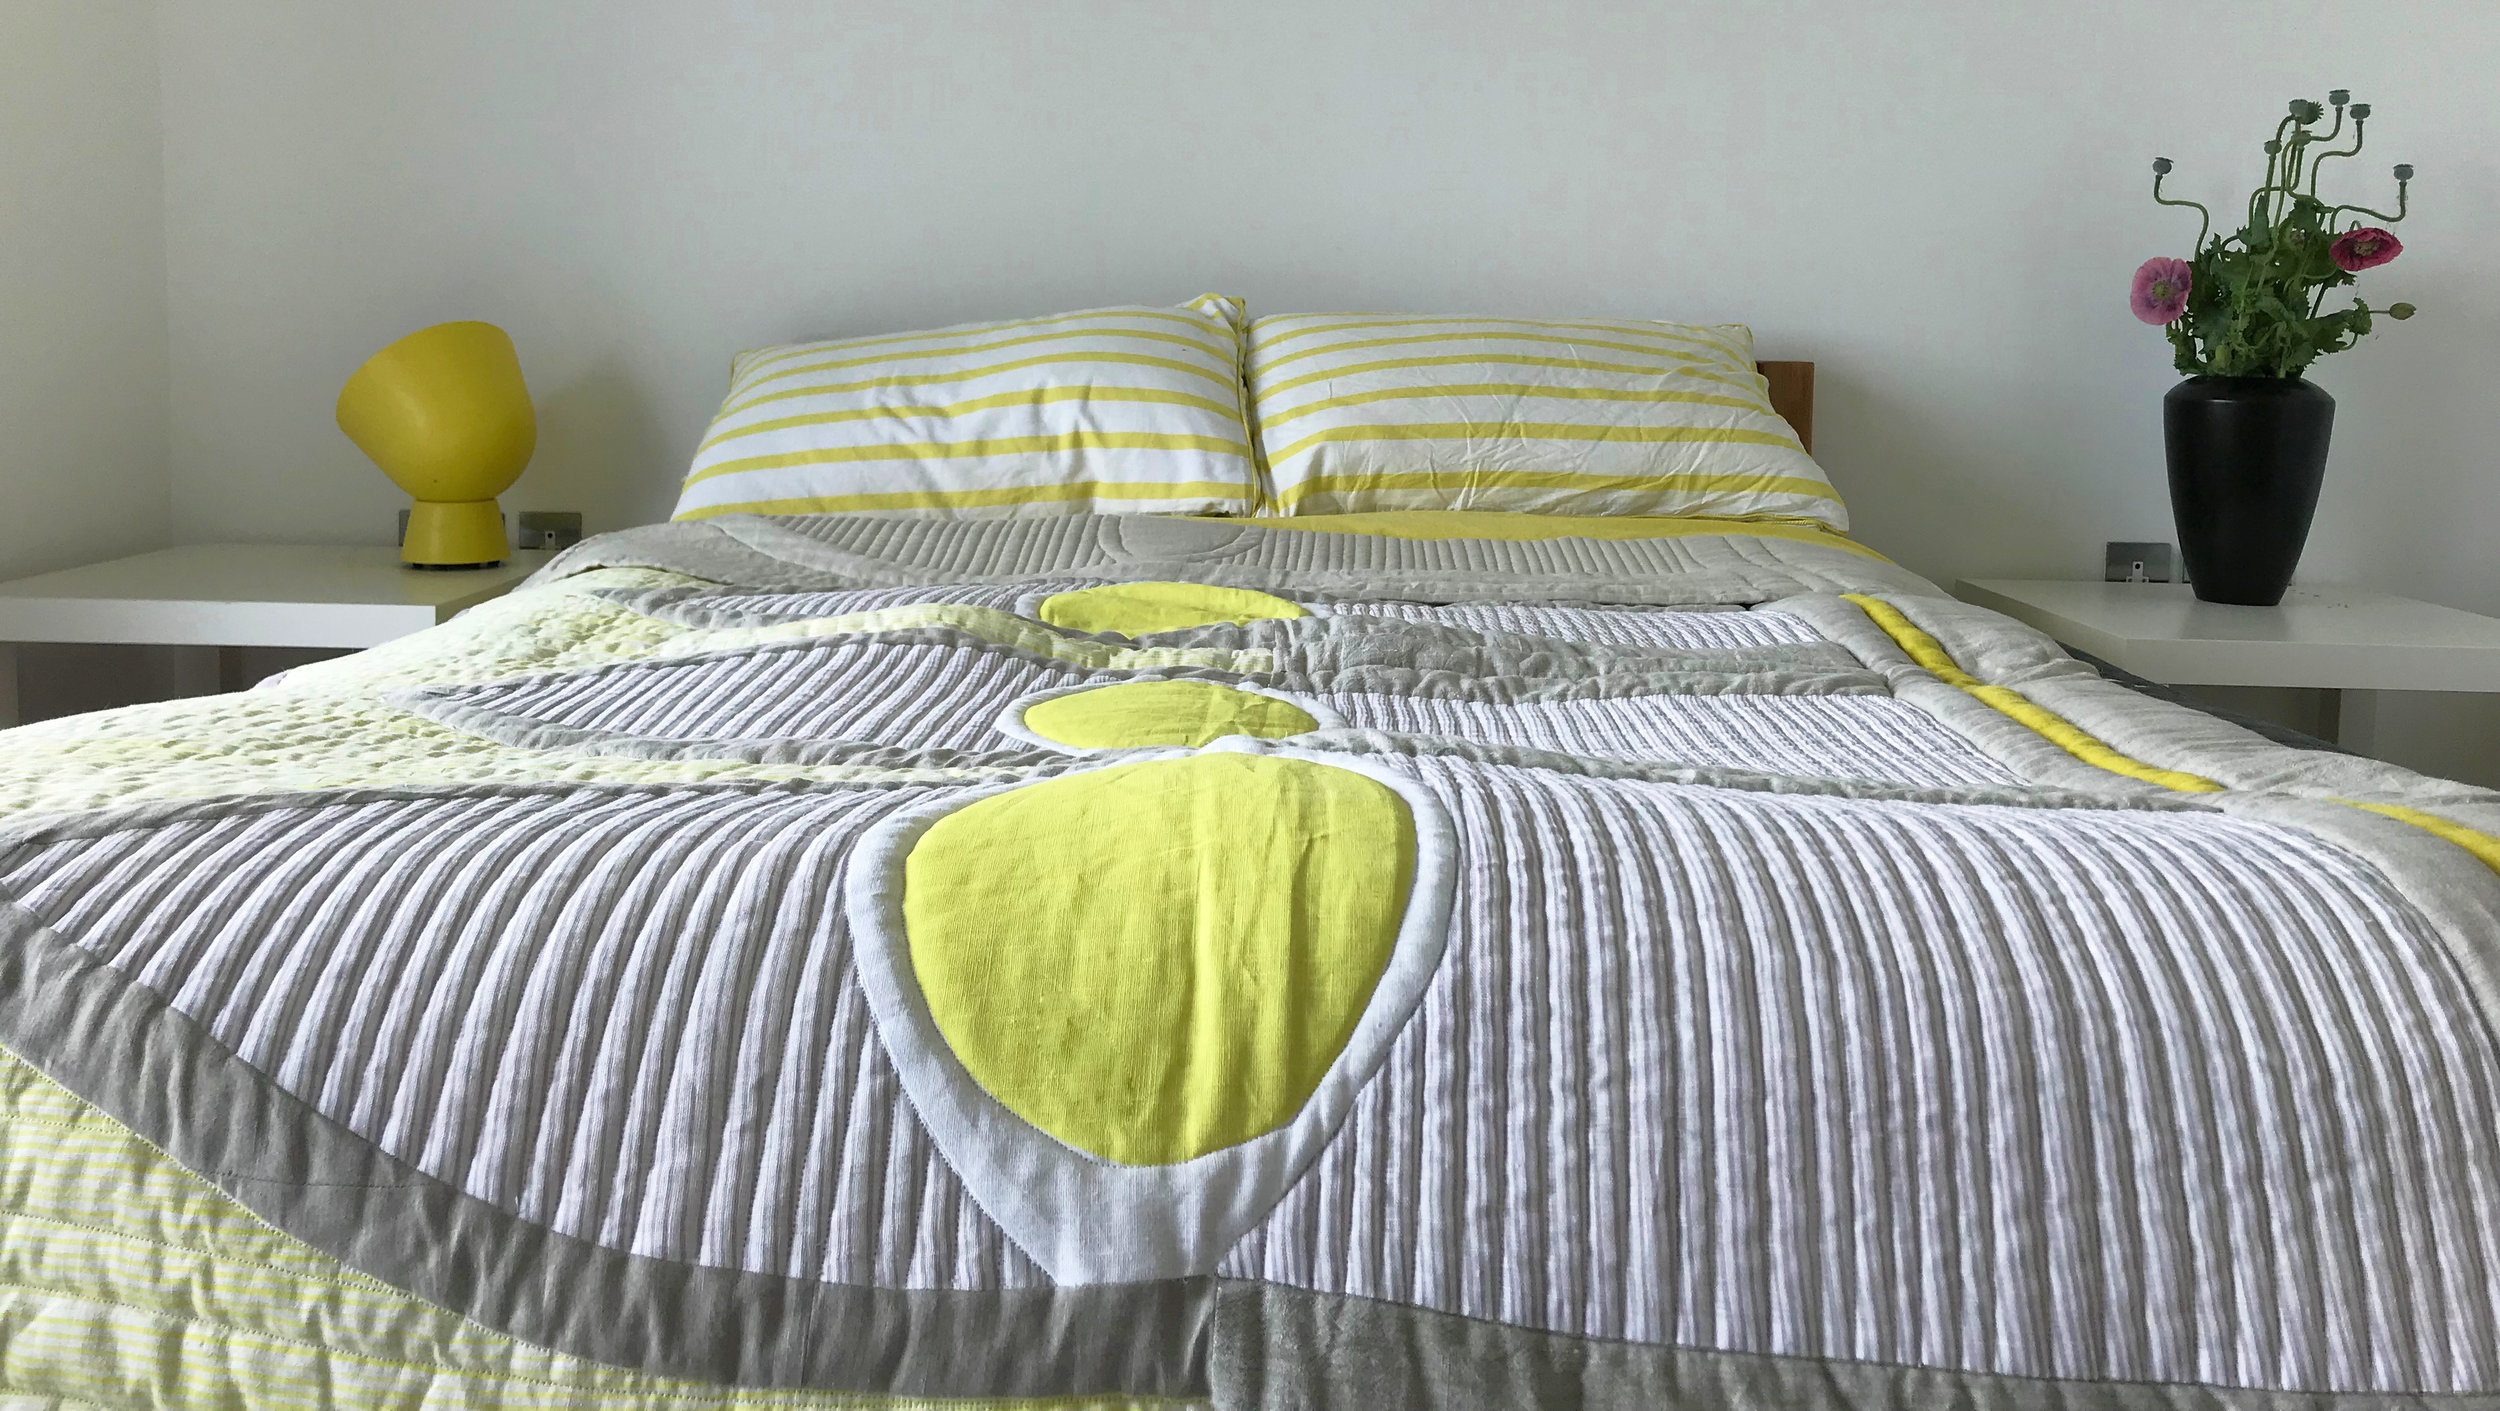 arches quilt bed 2.jpg